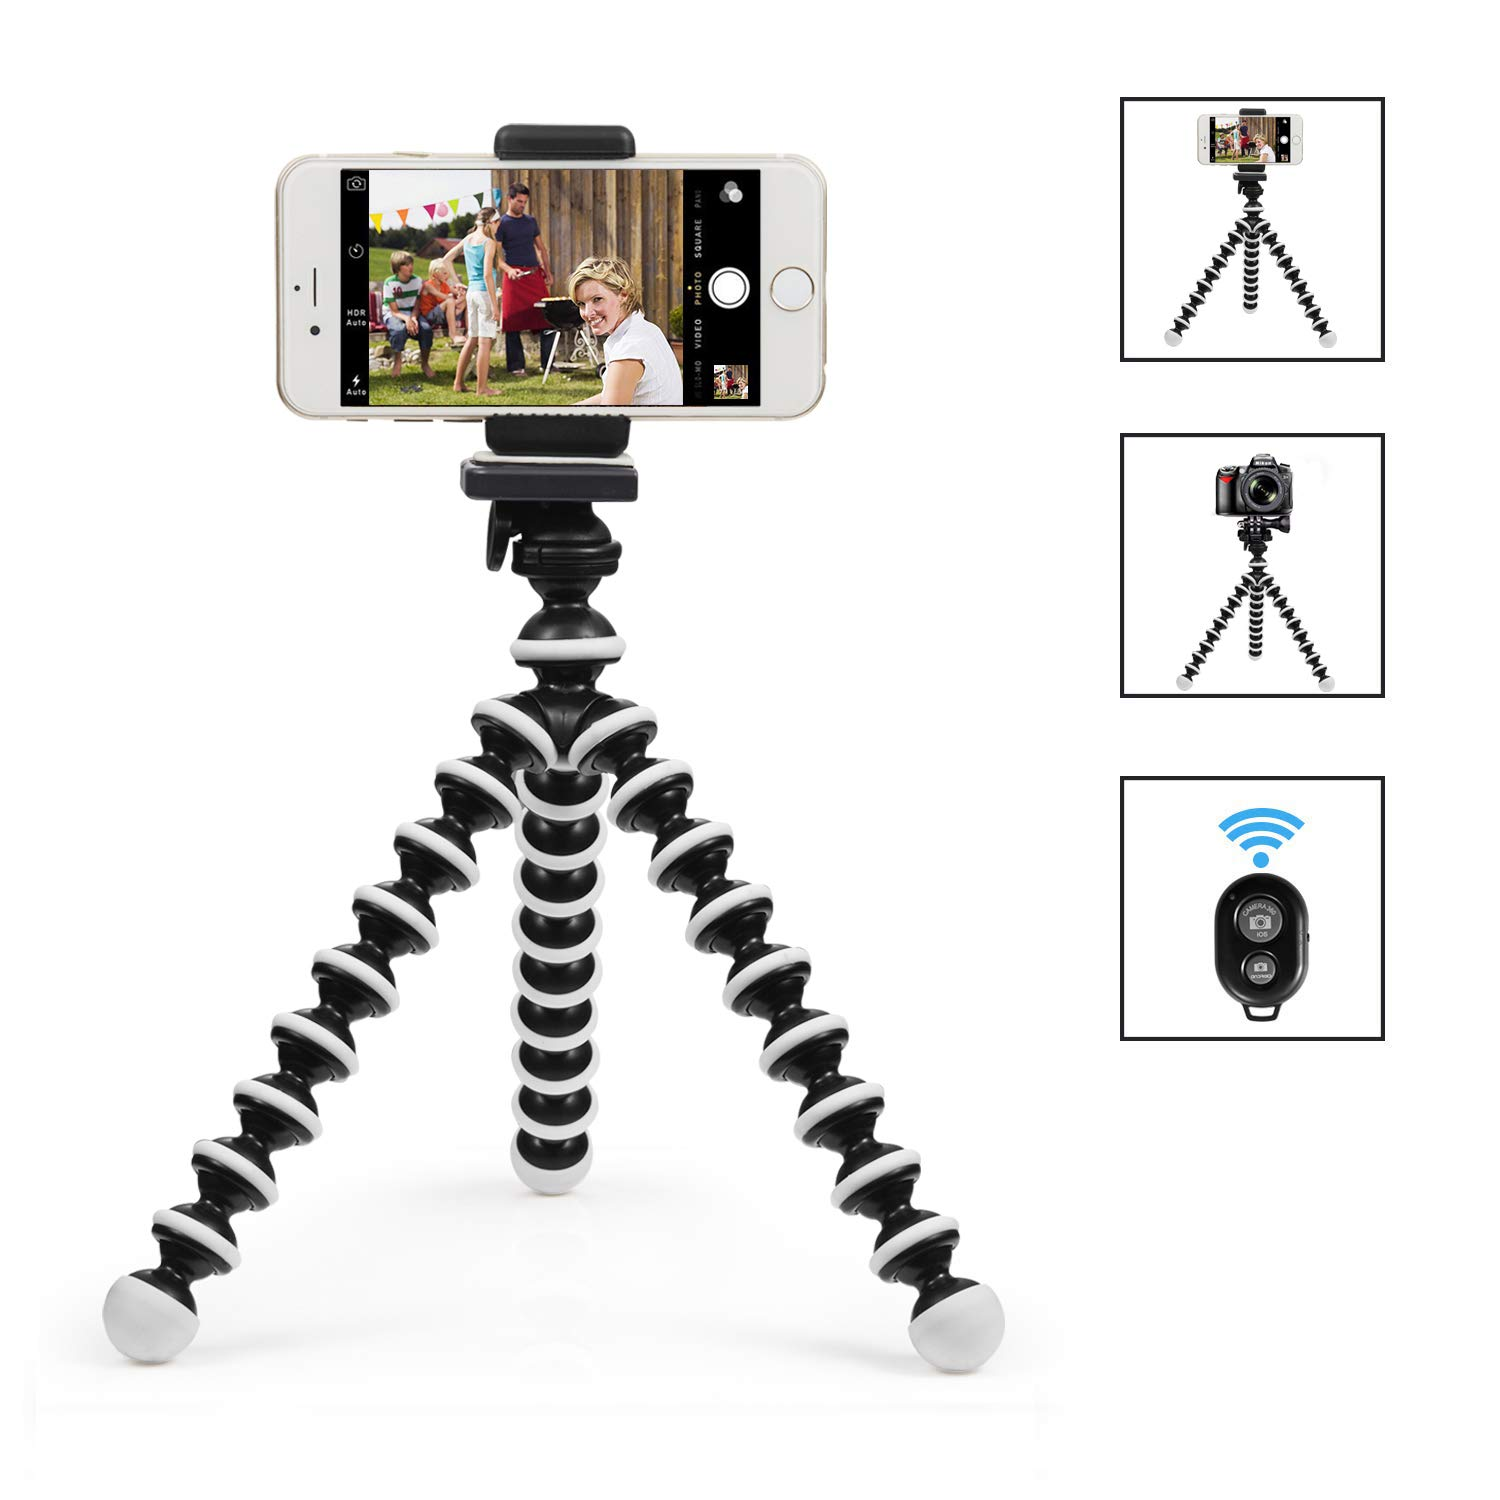 Sweego Phone Tripod, Flexible Cell Phone Holder with Wireless Bluetooth Remote, Adjustable Octopus Style Camera Stand Mount, Compatible with iPhone & Android Phones, Sport Camera, GoPro Devices